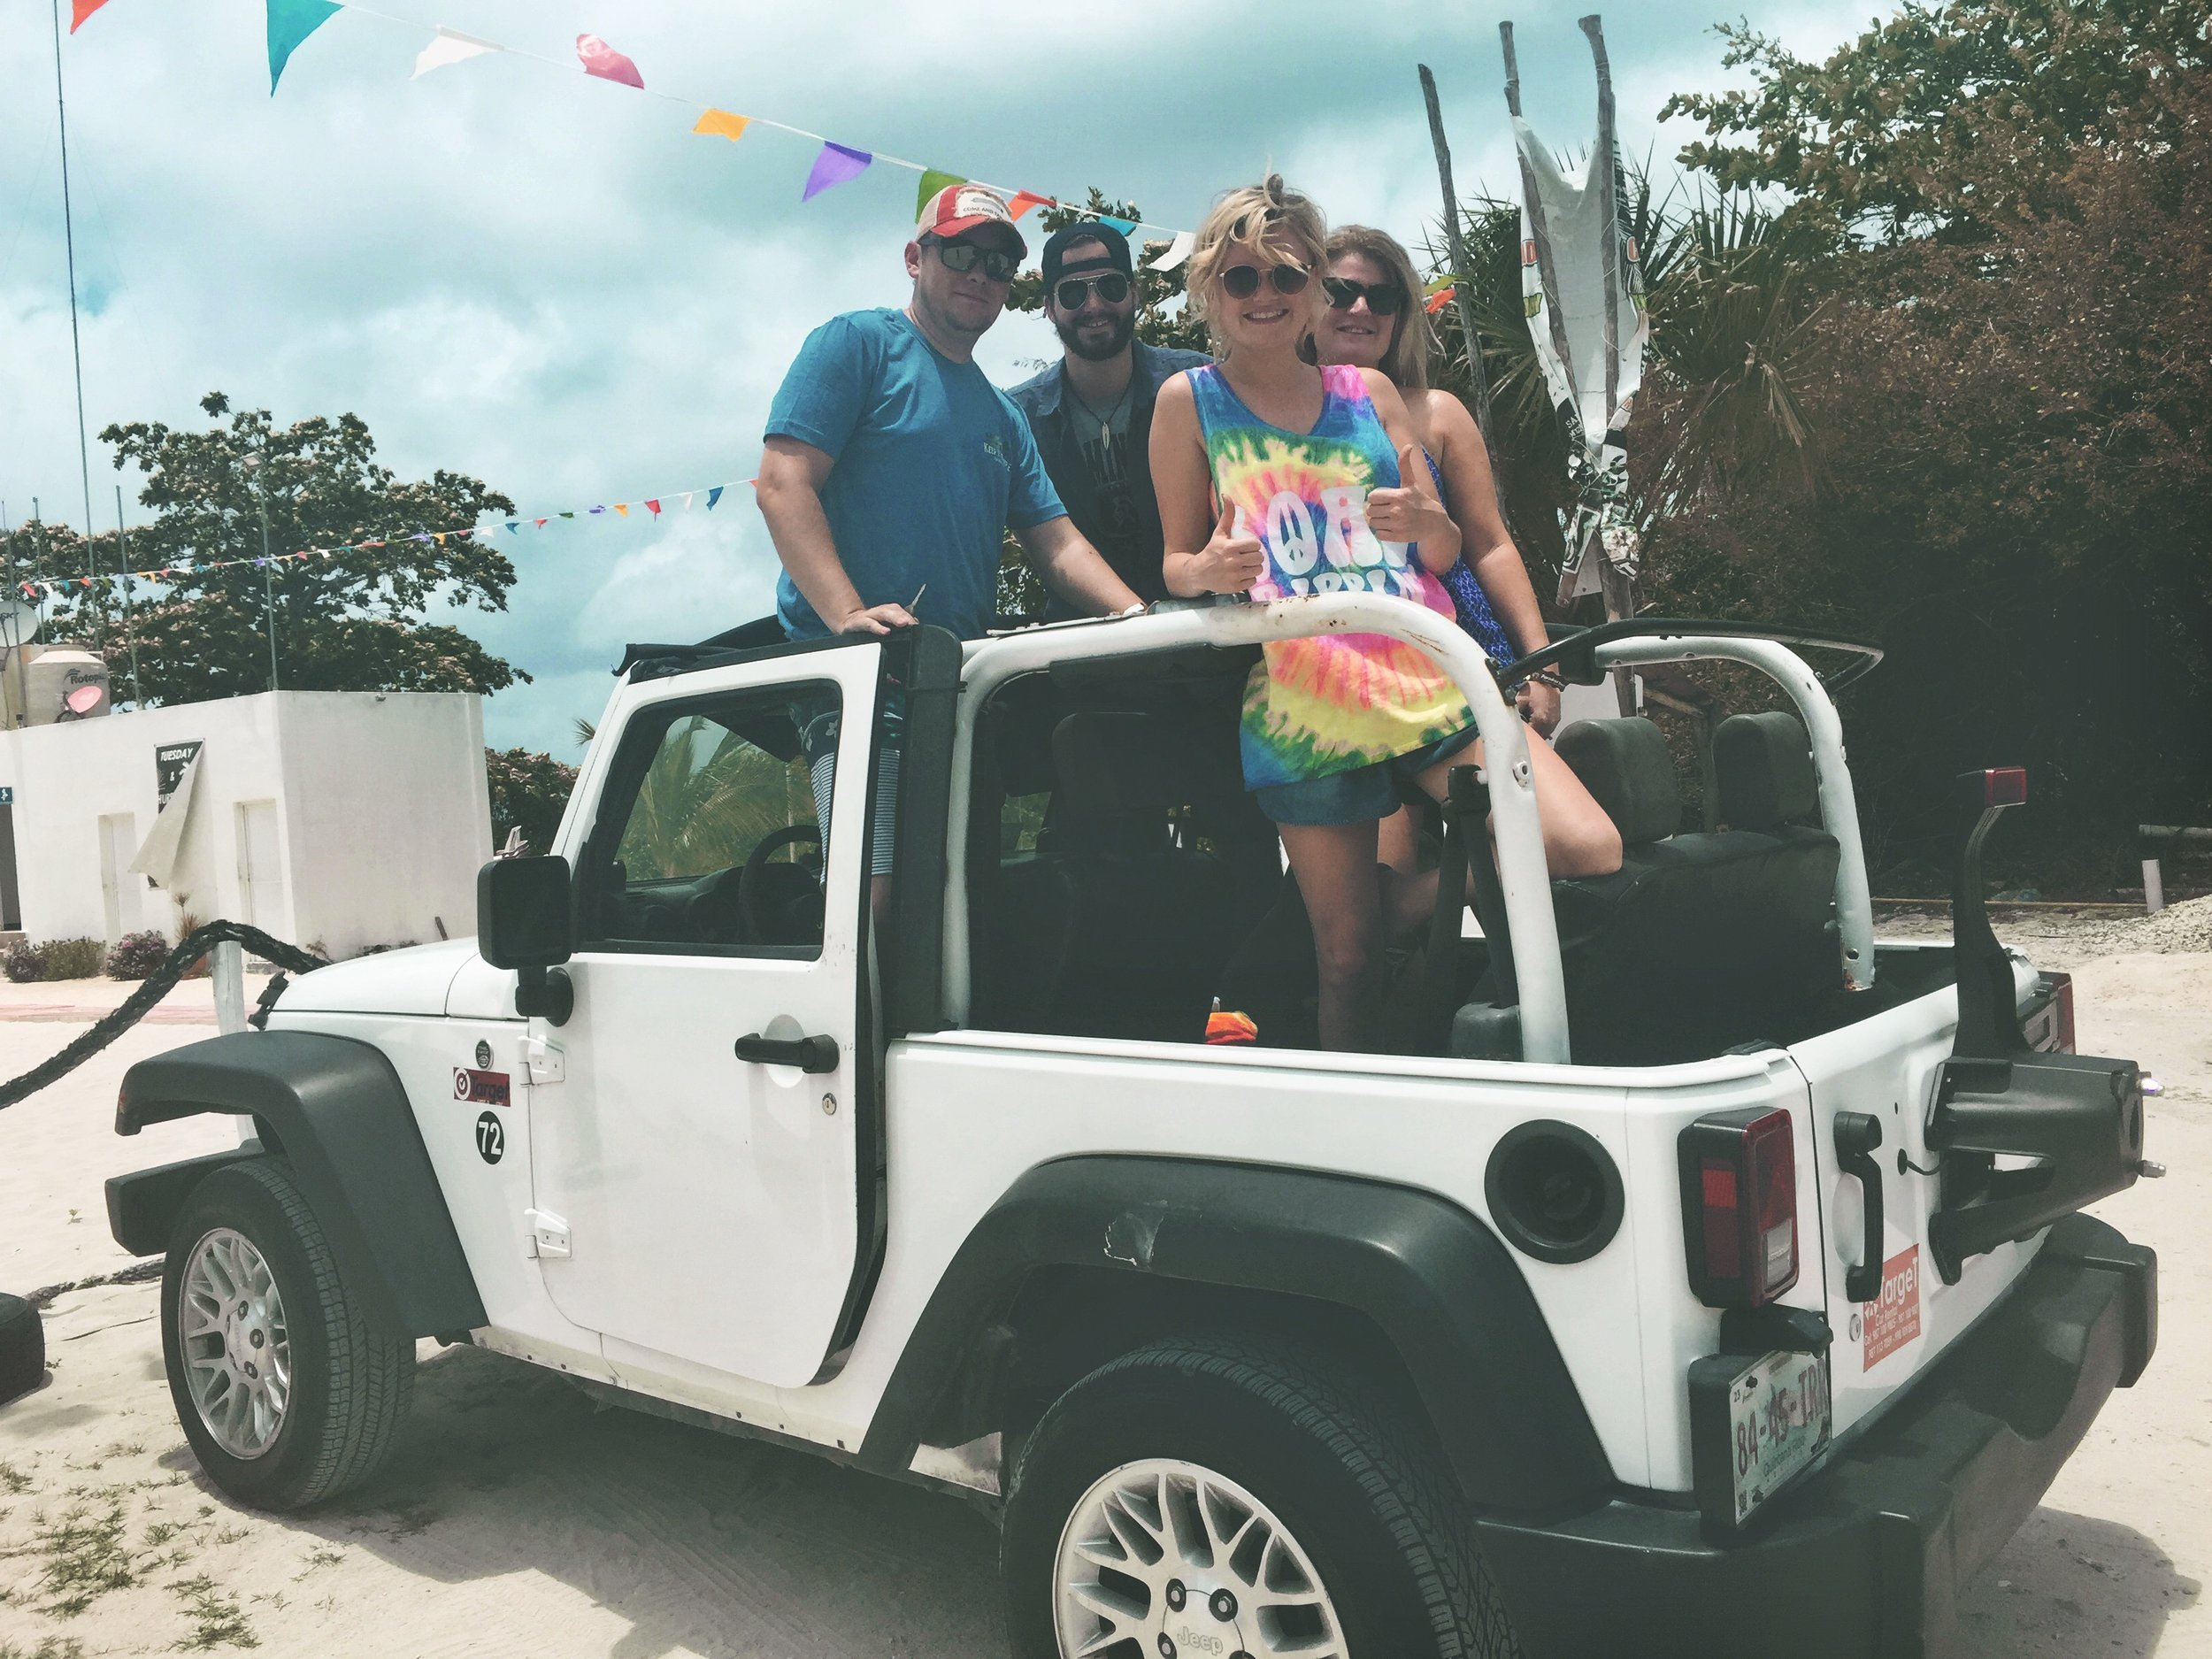 *Jeepin' around Cozumel with some of our FAVORITE friends we met on board from Austin, TX - Chris and Michelle Genzardi